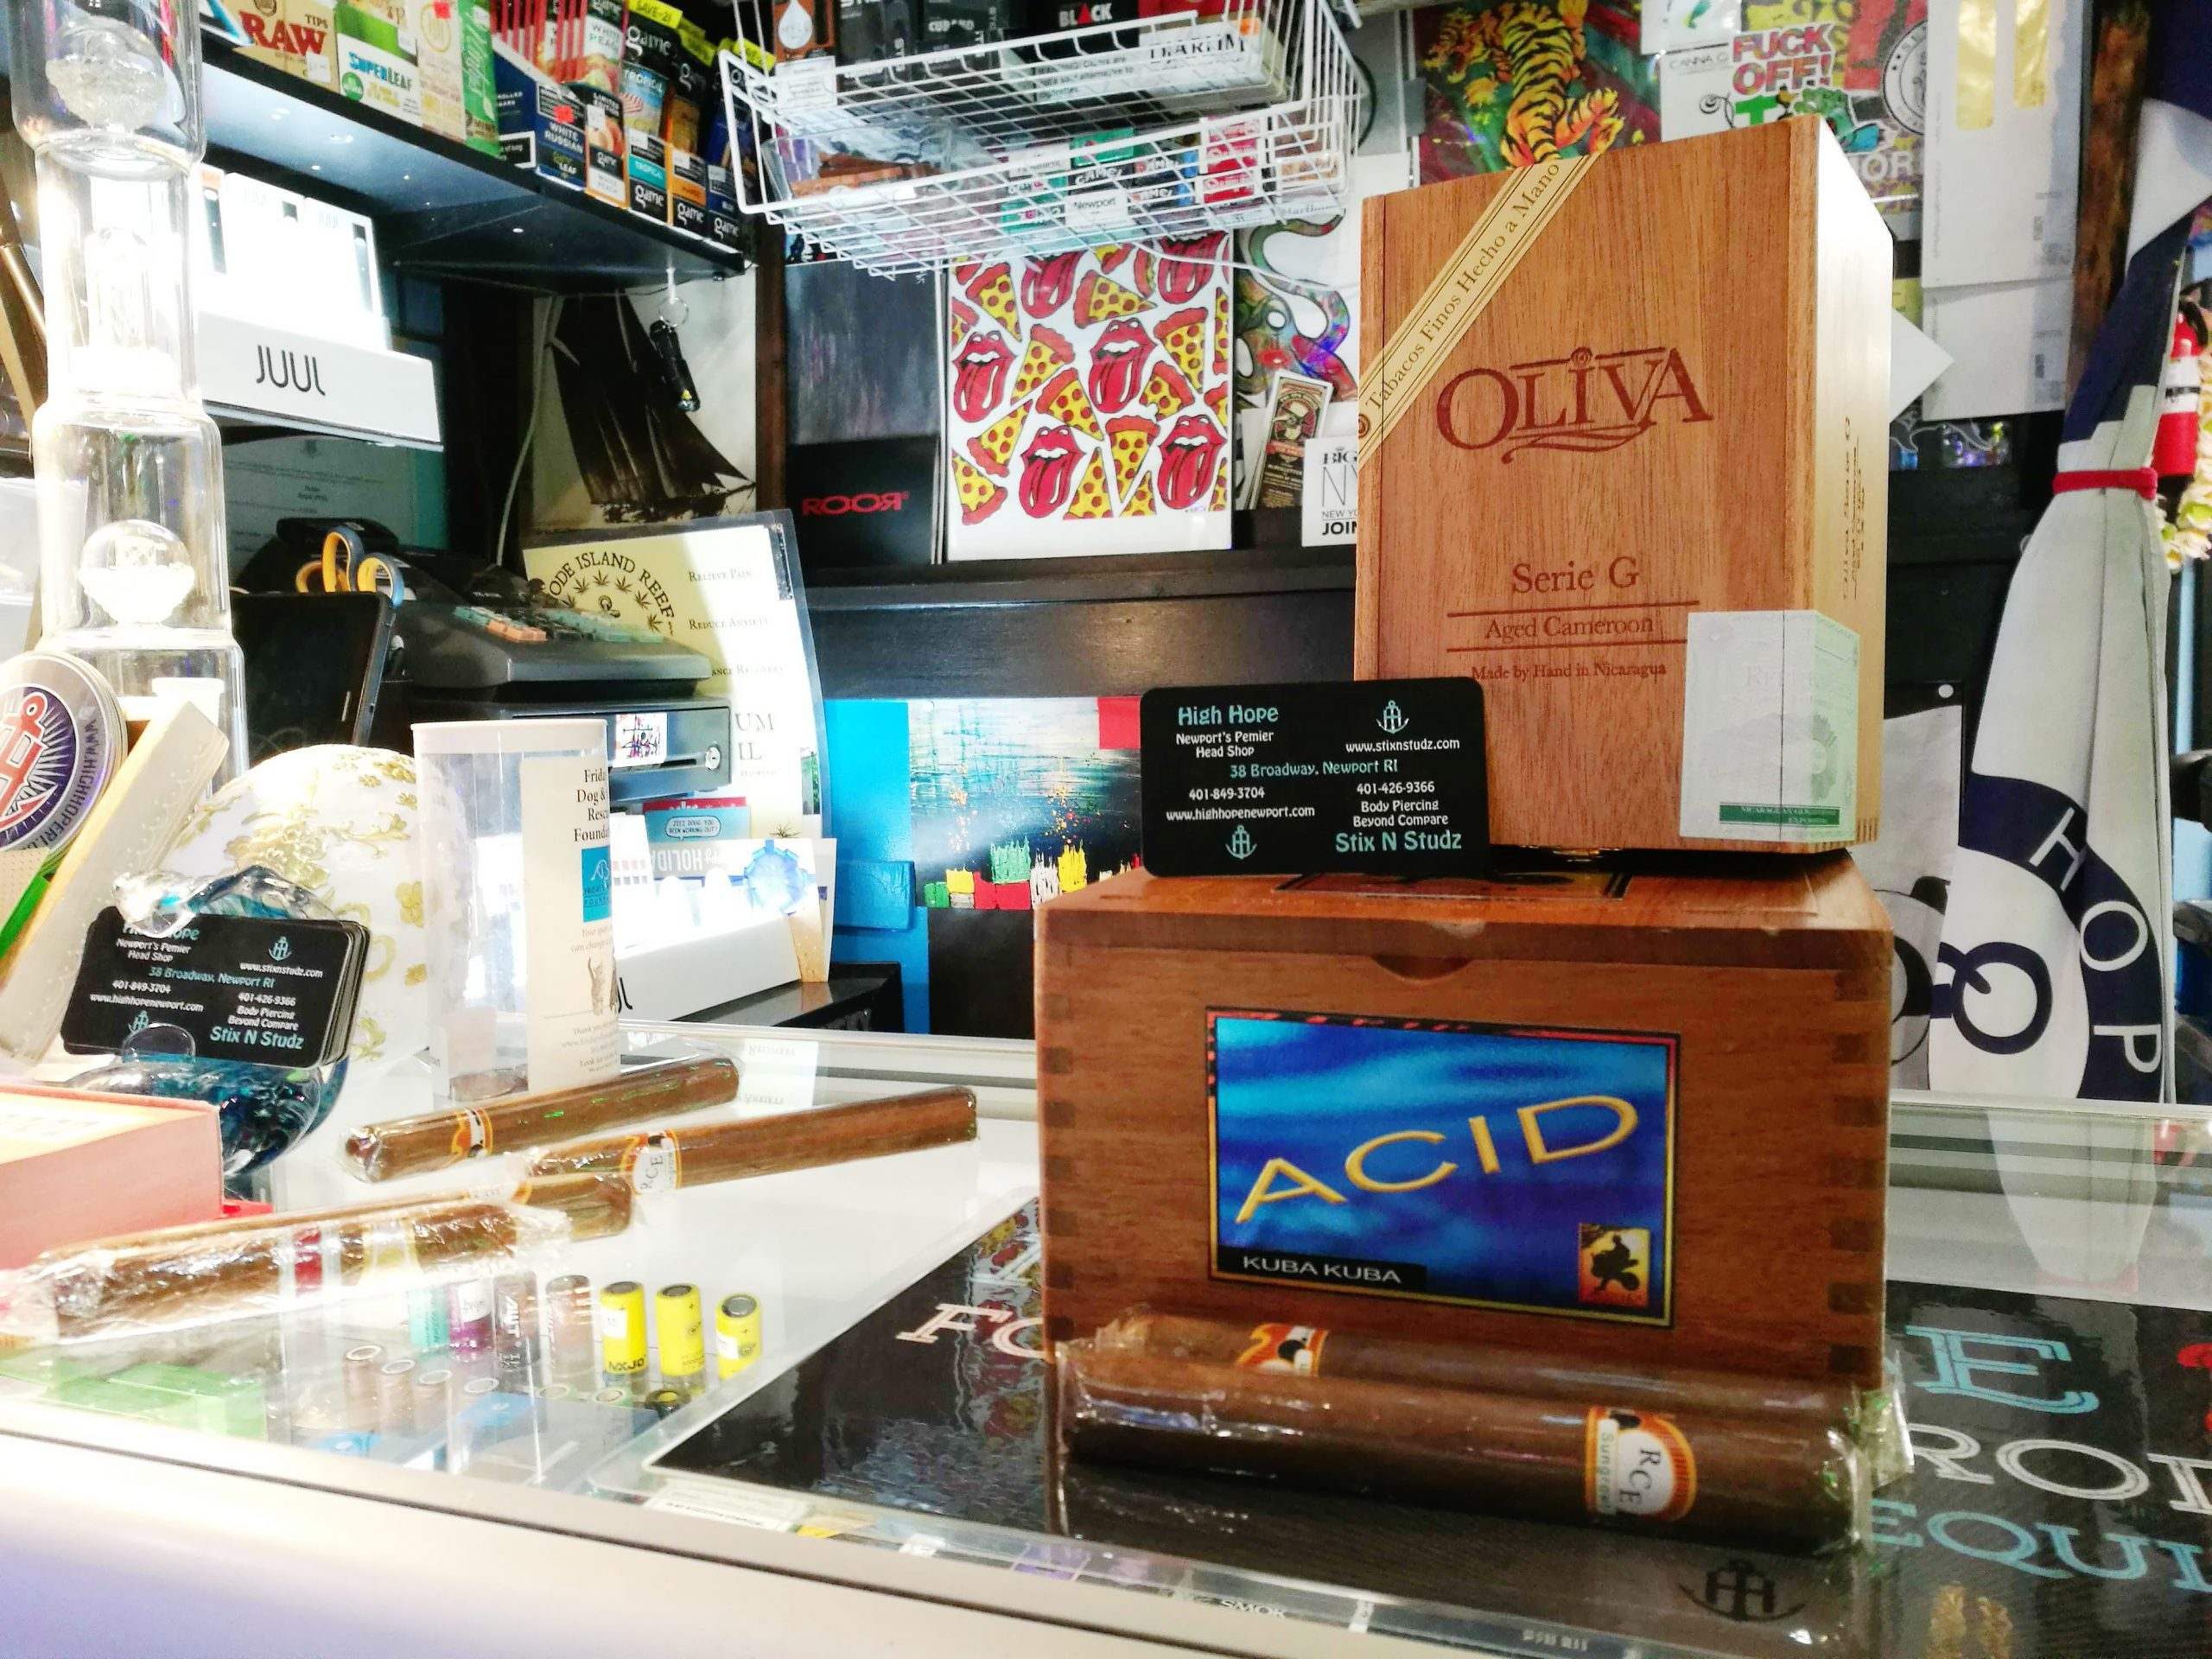 ACID and Olivia cigar box with RCE cigars